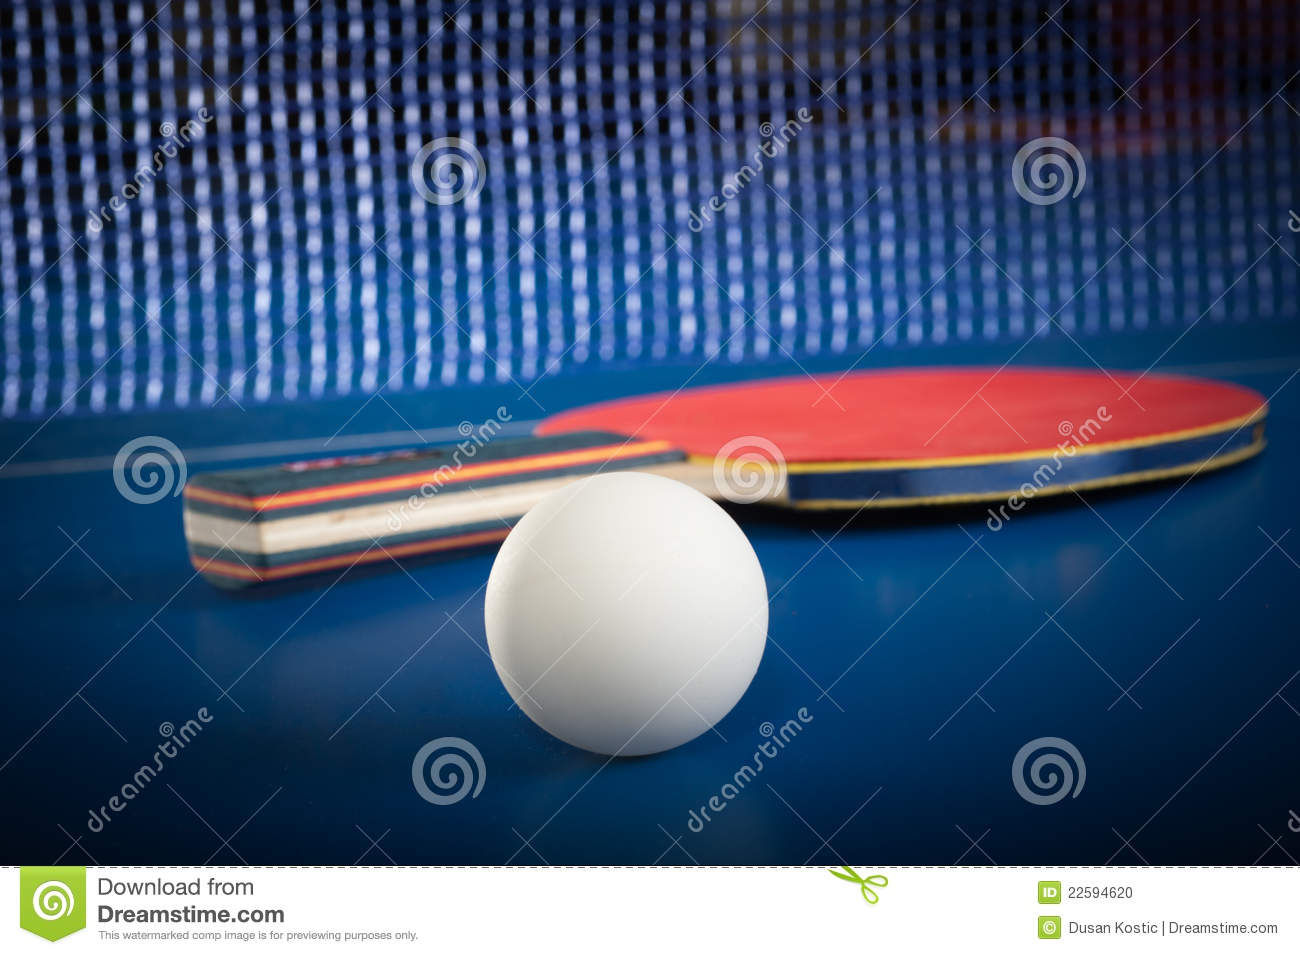 Equipment for table tennis stock photo image 22594620 - Equipment for table tennis ...